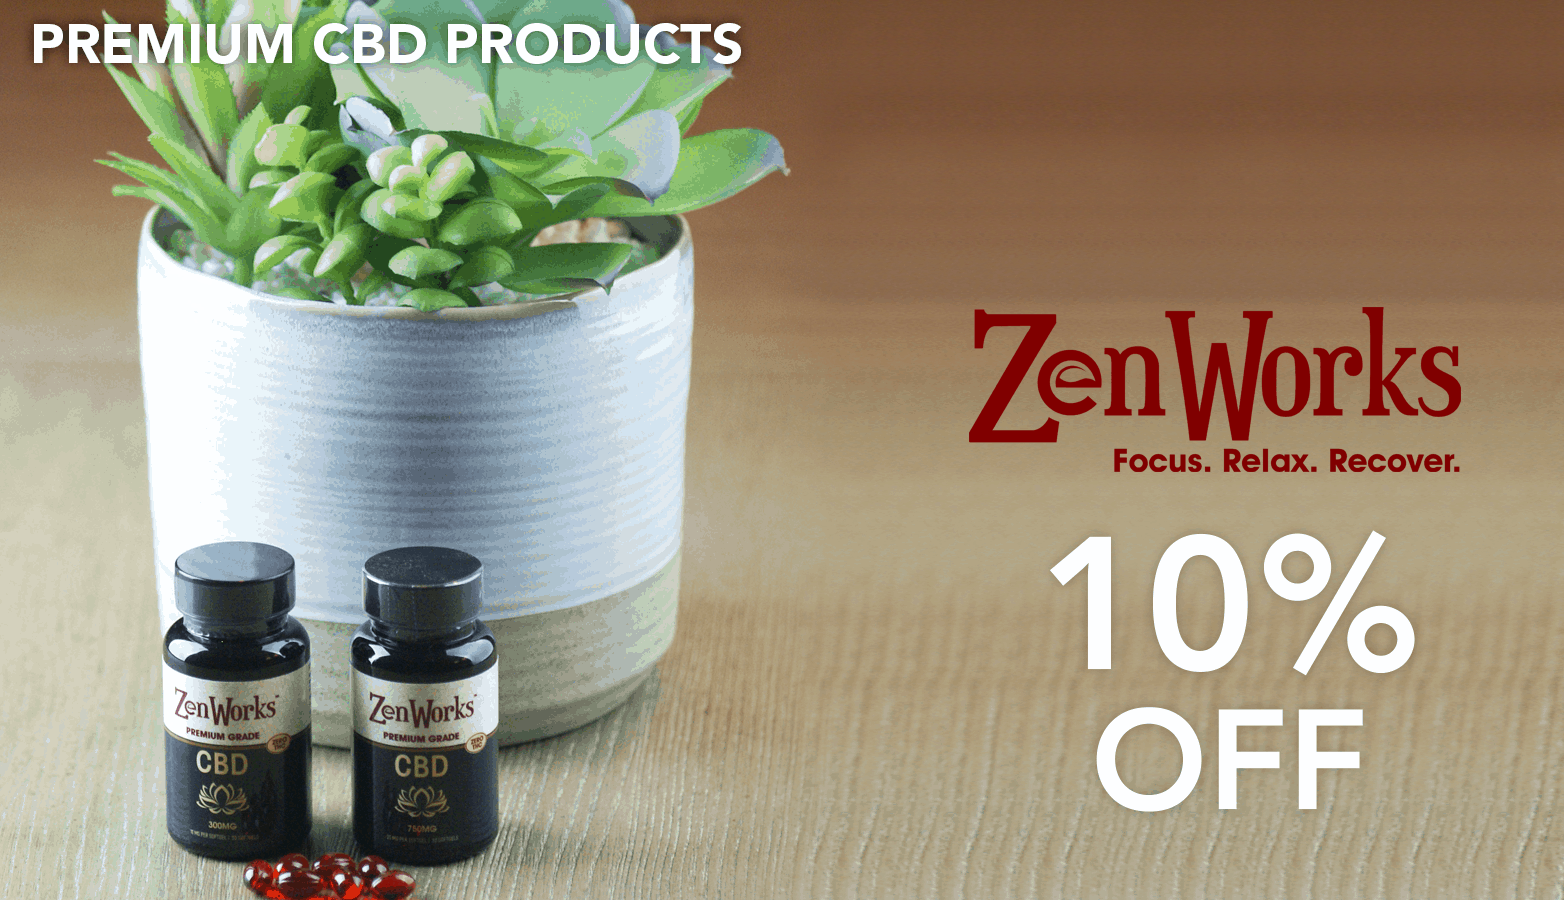 ZenWorks CBD Coupon Code discounts promos save on cannabis online Website